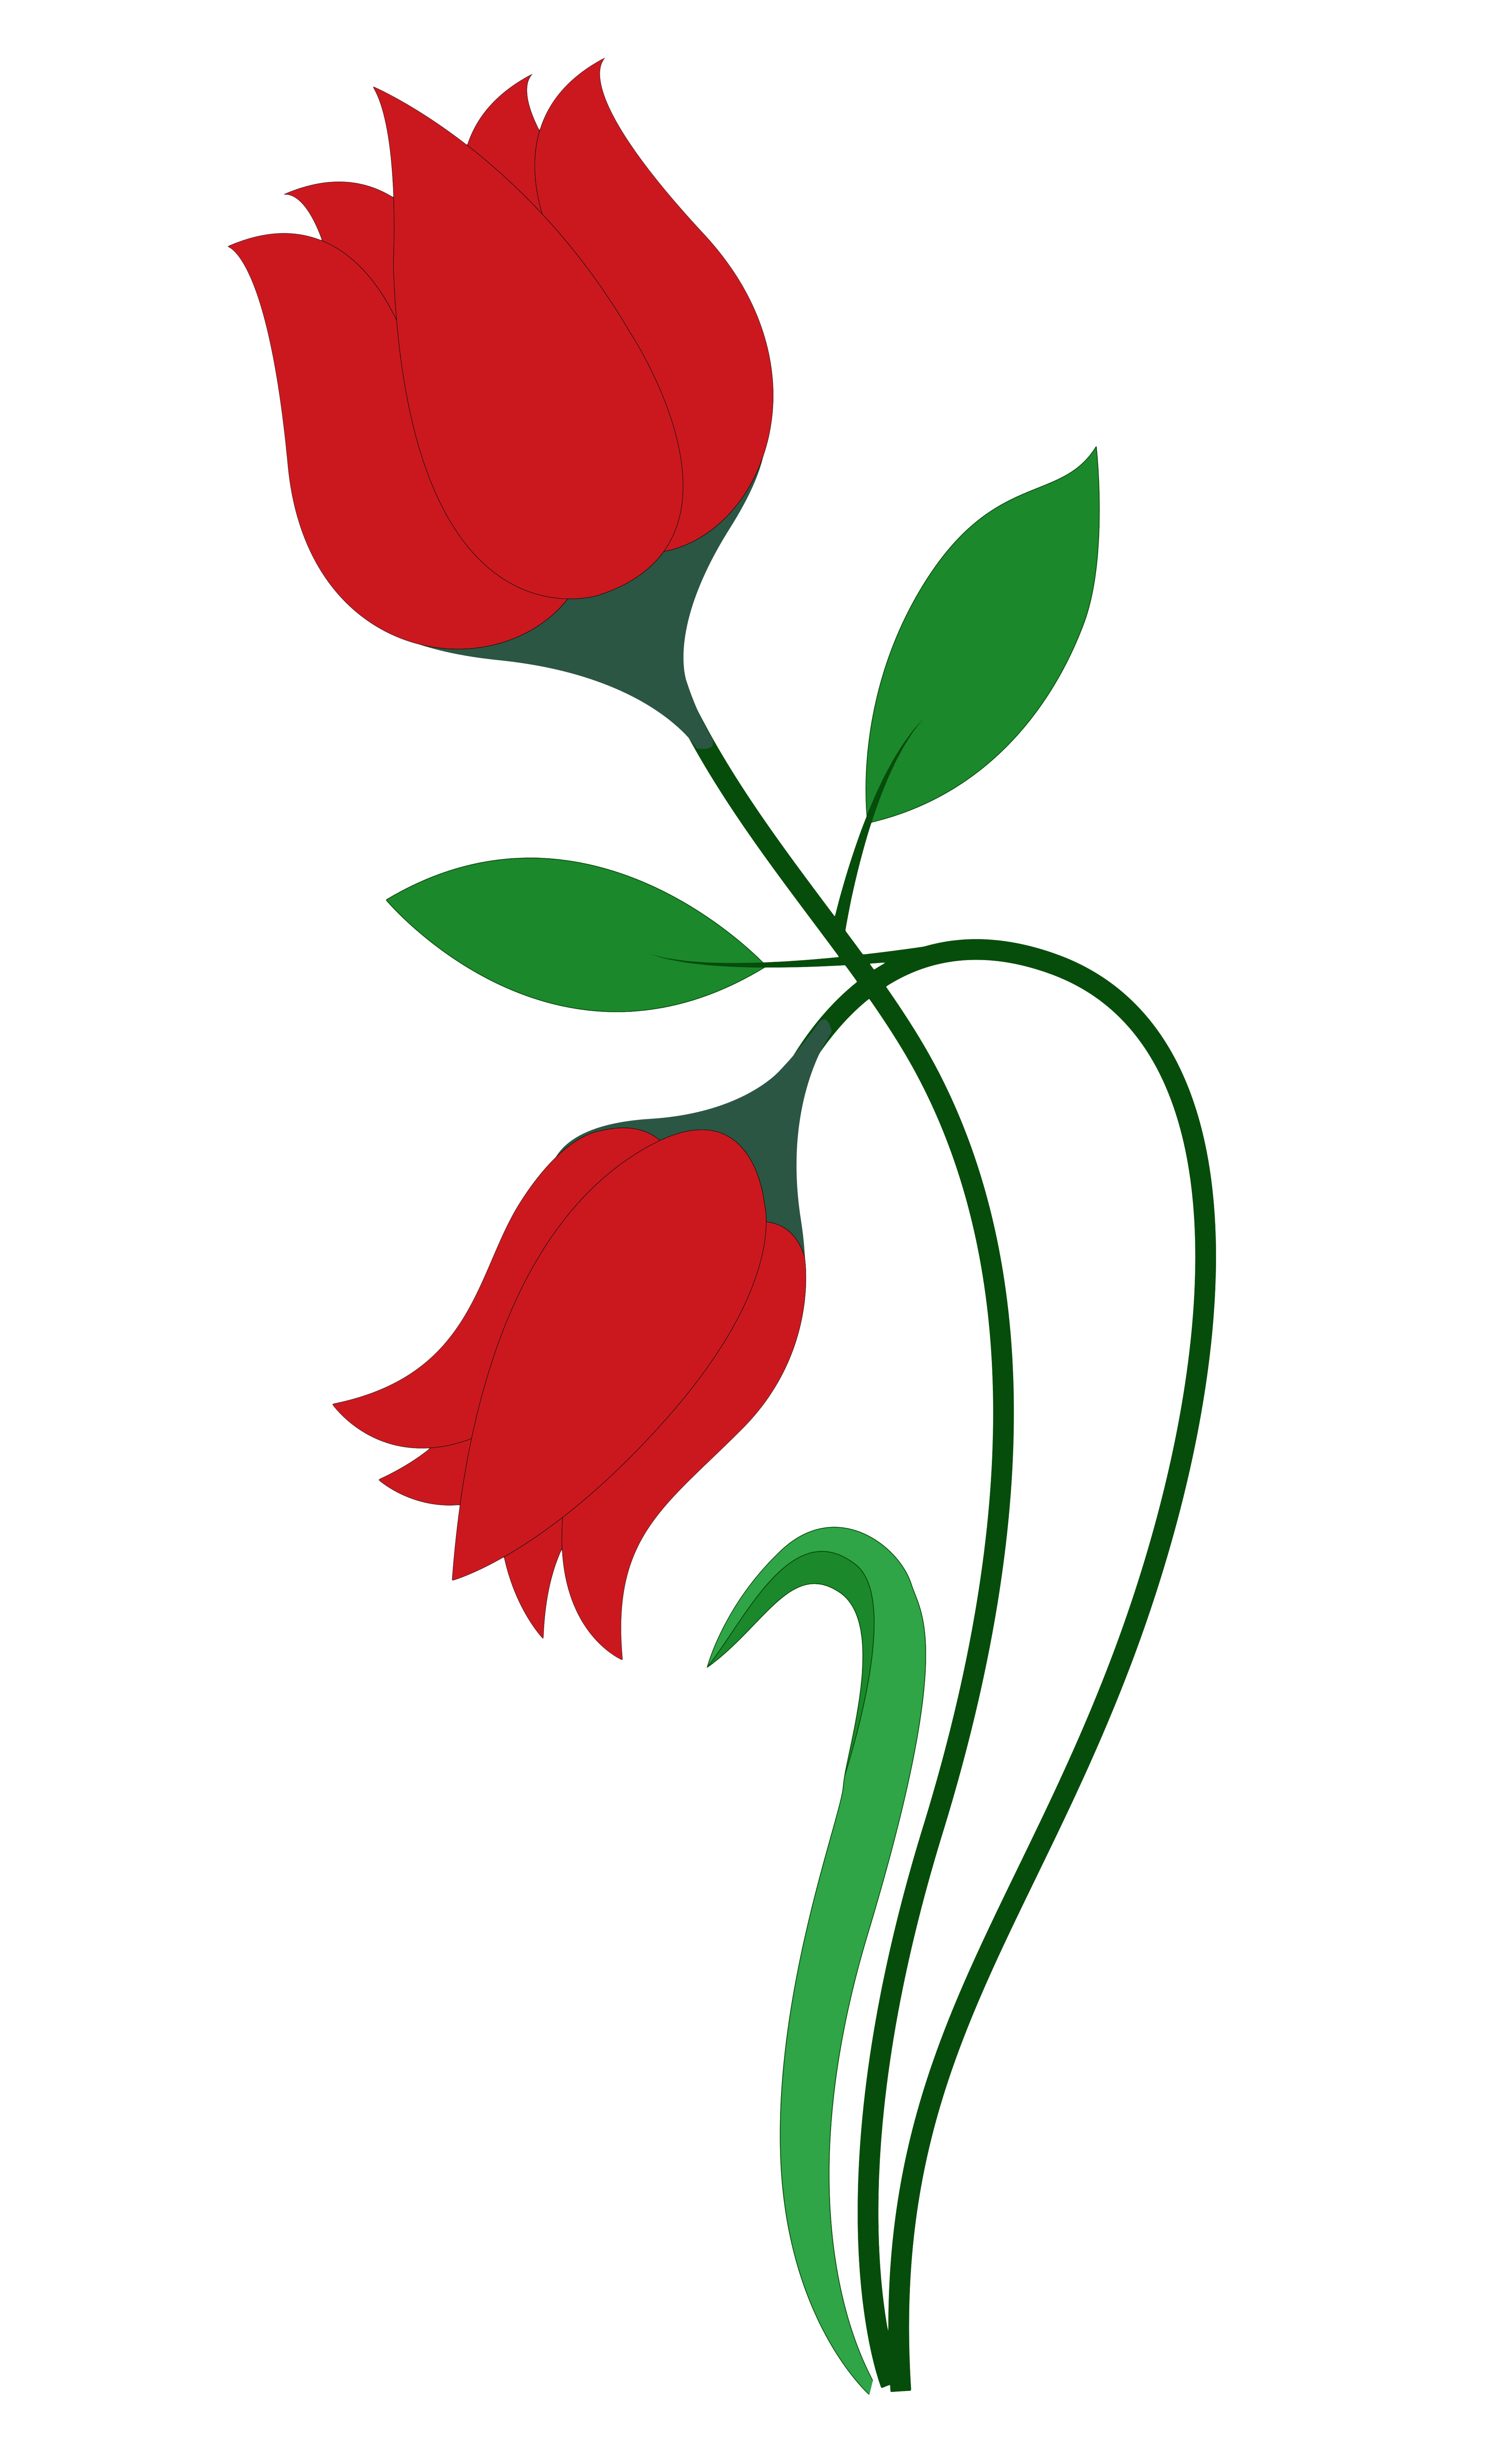 Flower at getdrawings com. Rose clipart blossom